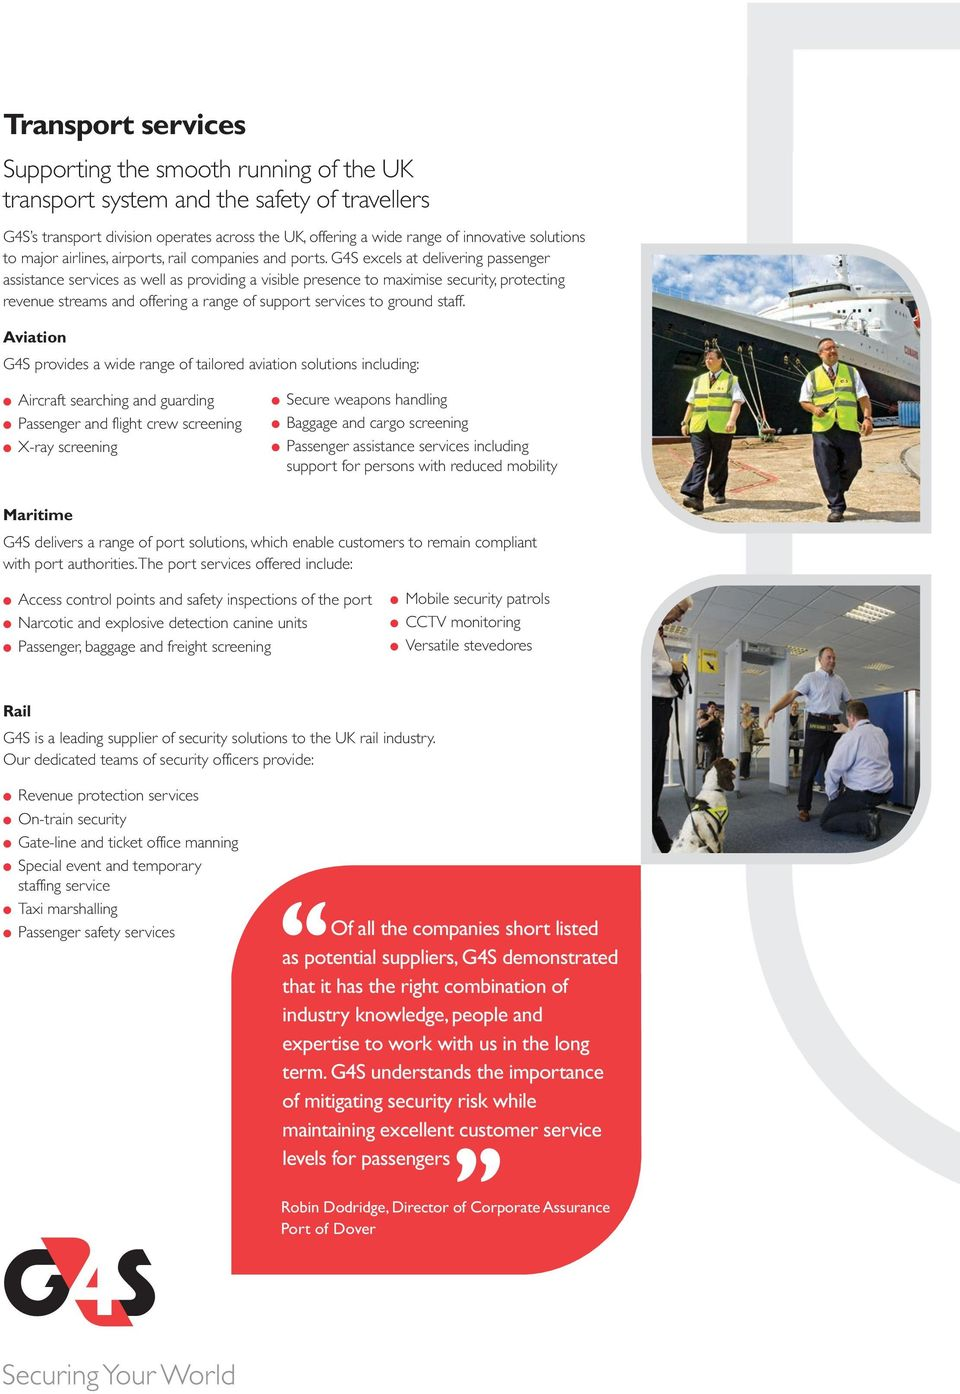 G4S excels at delivering passenger assistance services as well as providing a visible presence to maximise security, protecting revenue streams and offering a range of support services to ground